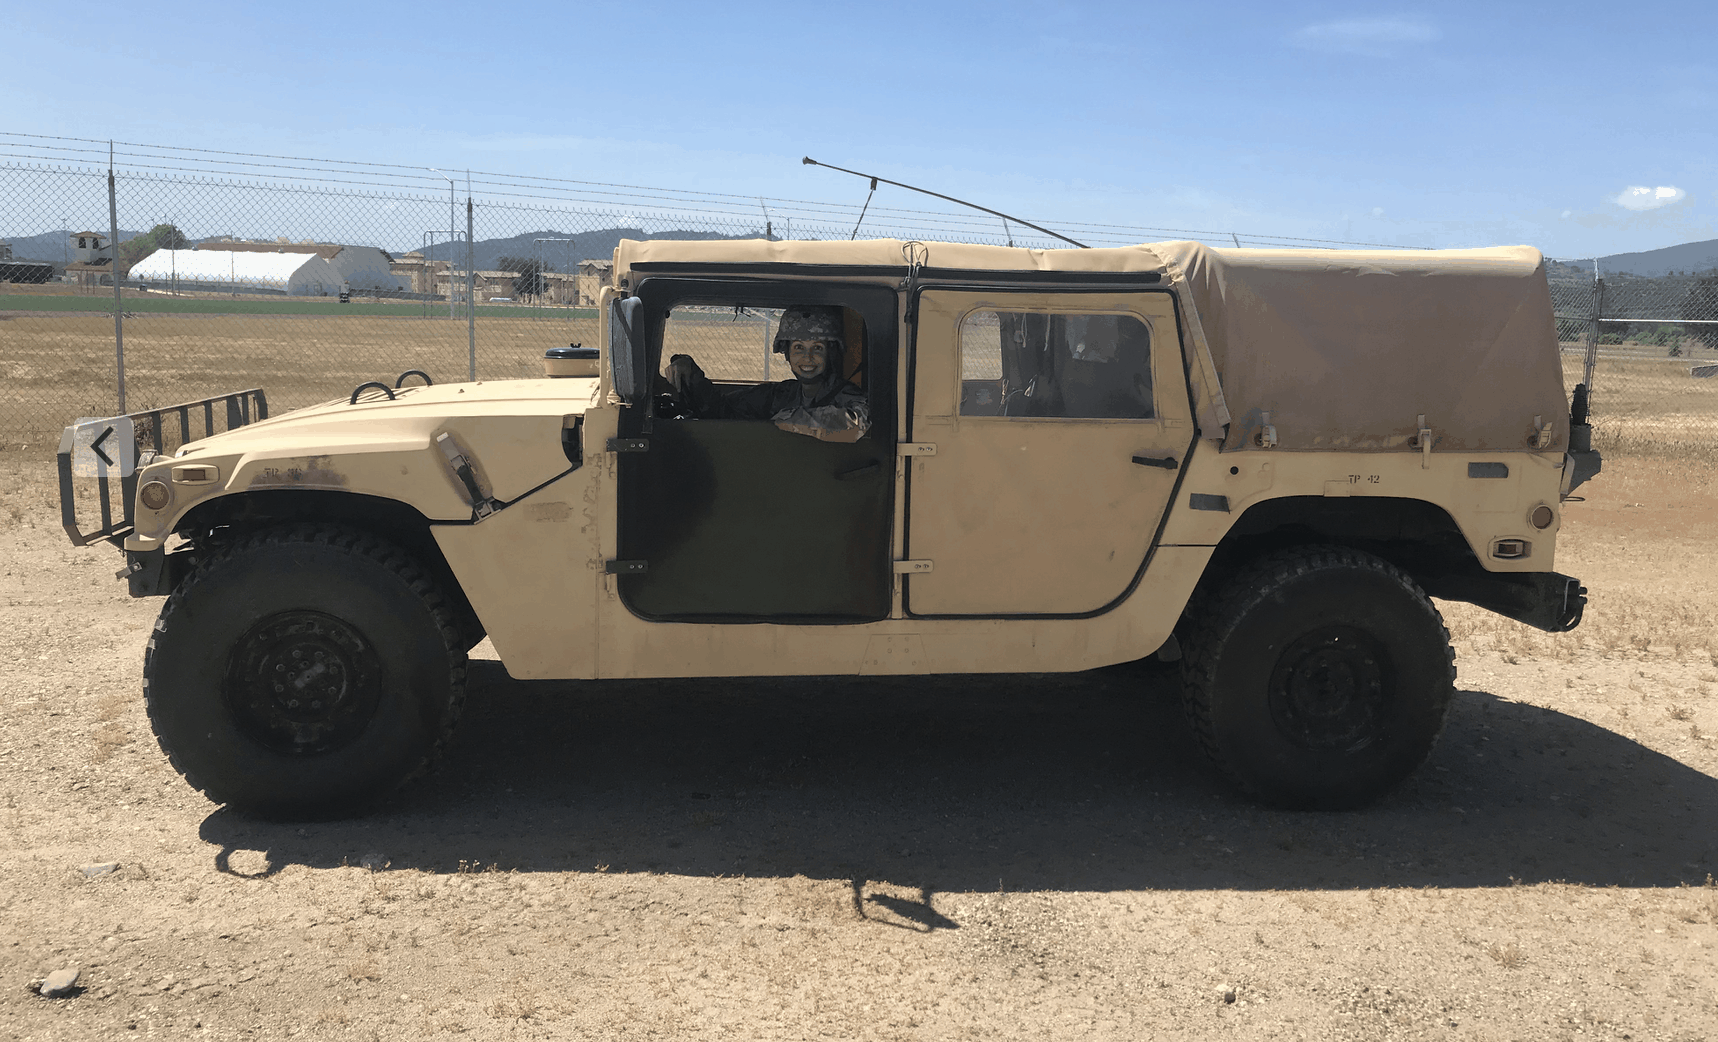 Jewell Siebert in an old HMMWV